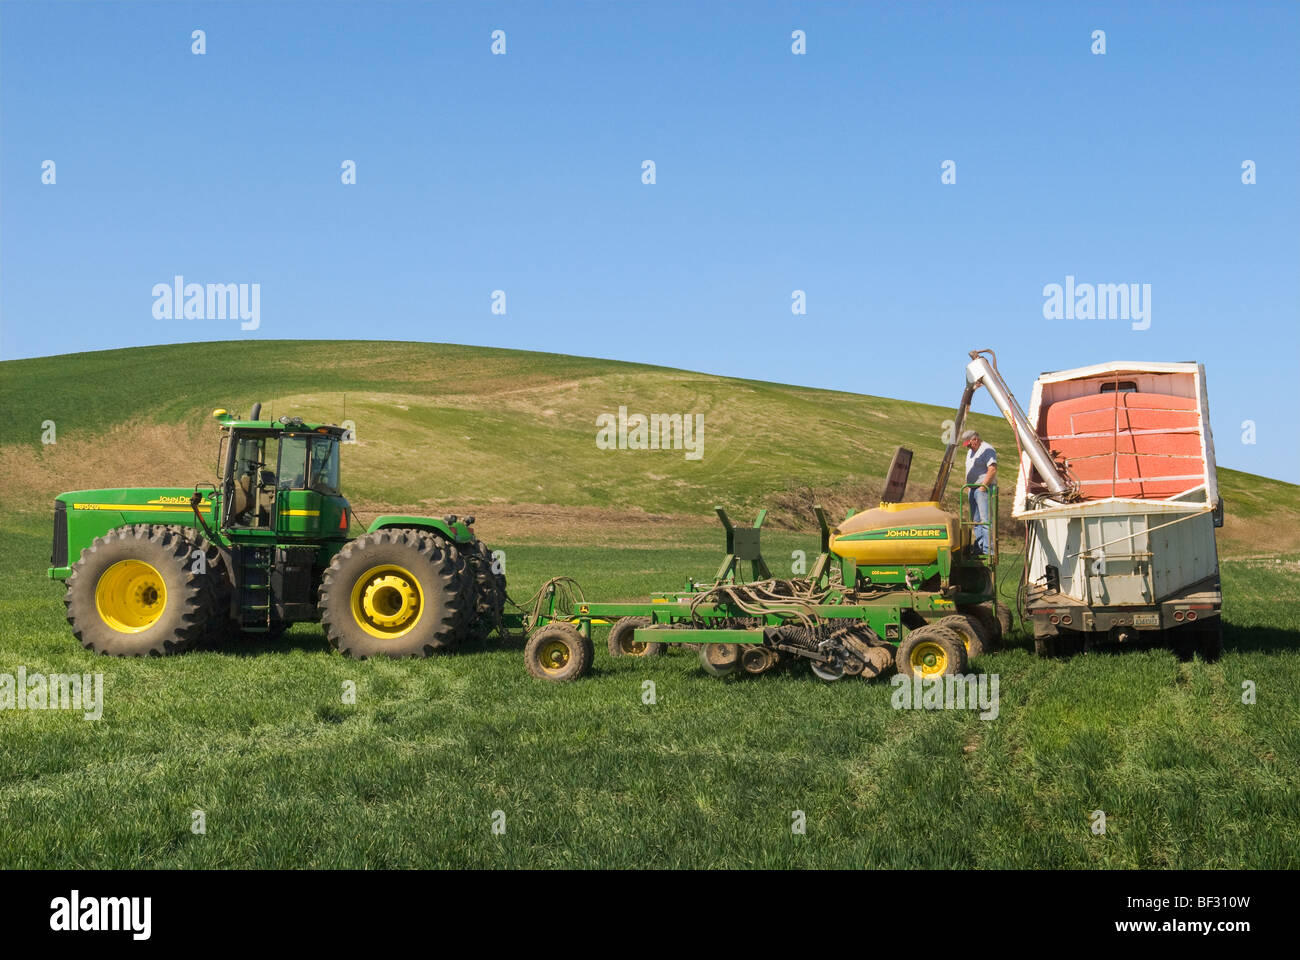 Loading an air seeder with wheat seeds to replant snow damaged areas of winter wheat in the rolling hills of the - Stock Image